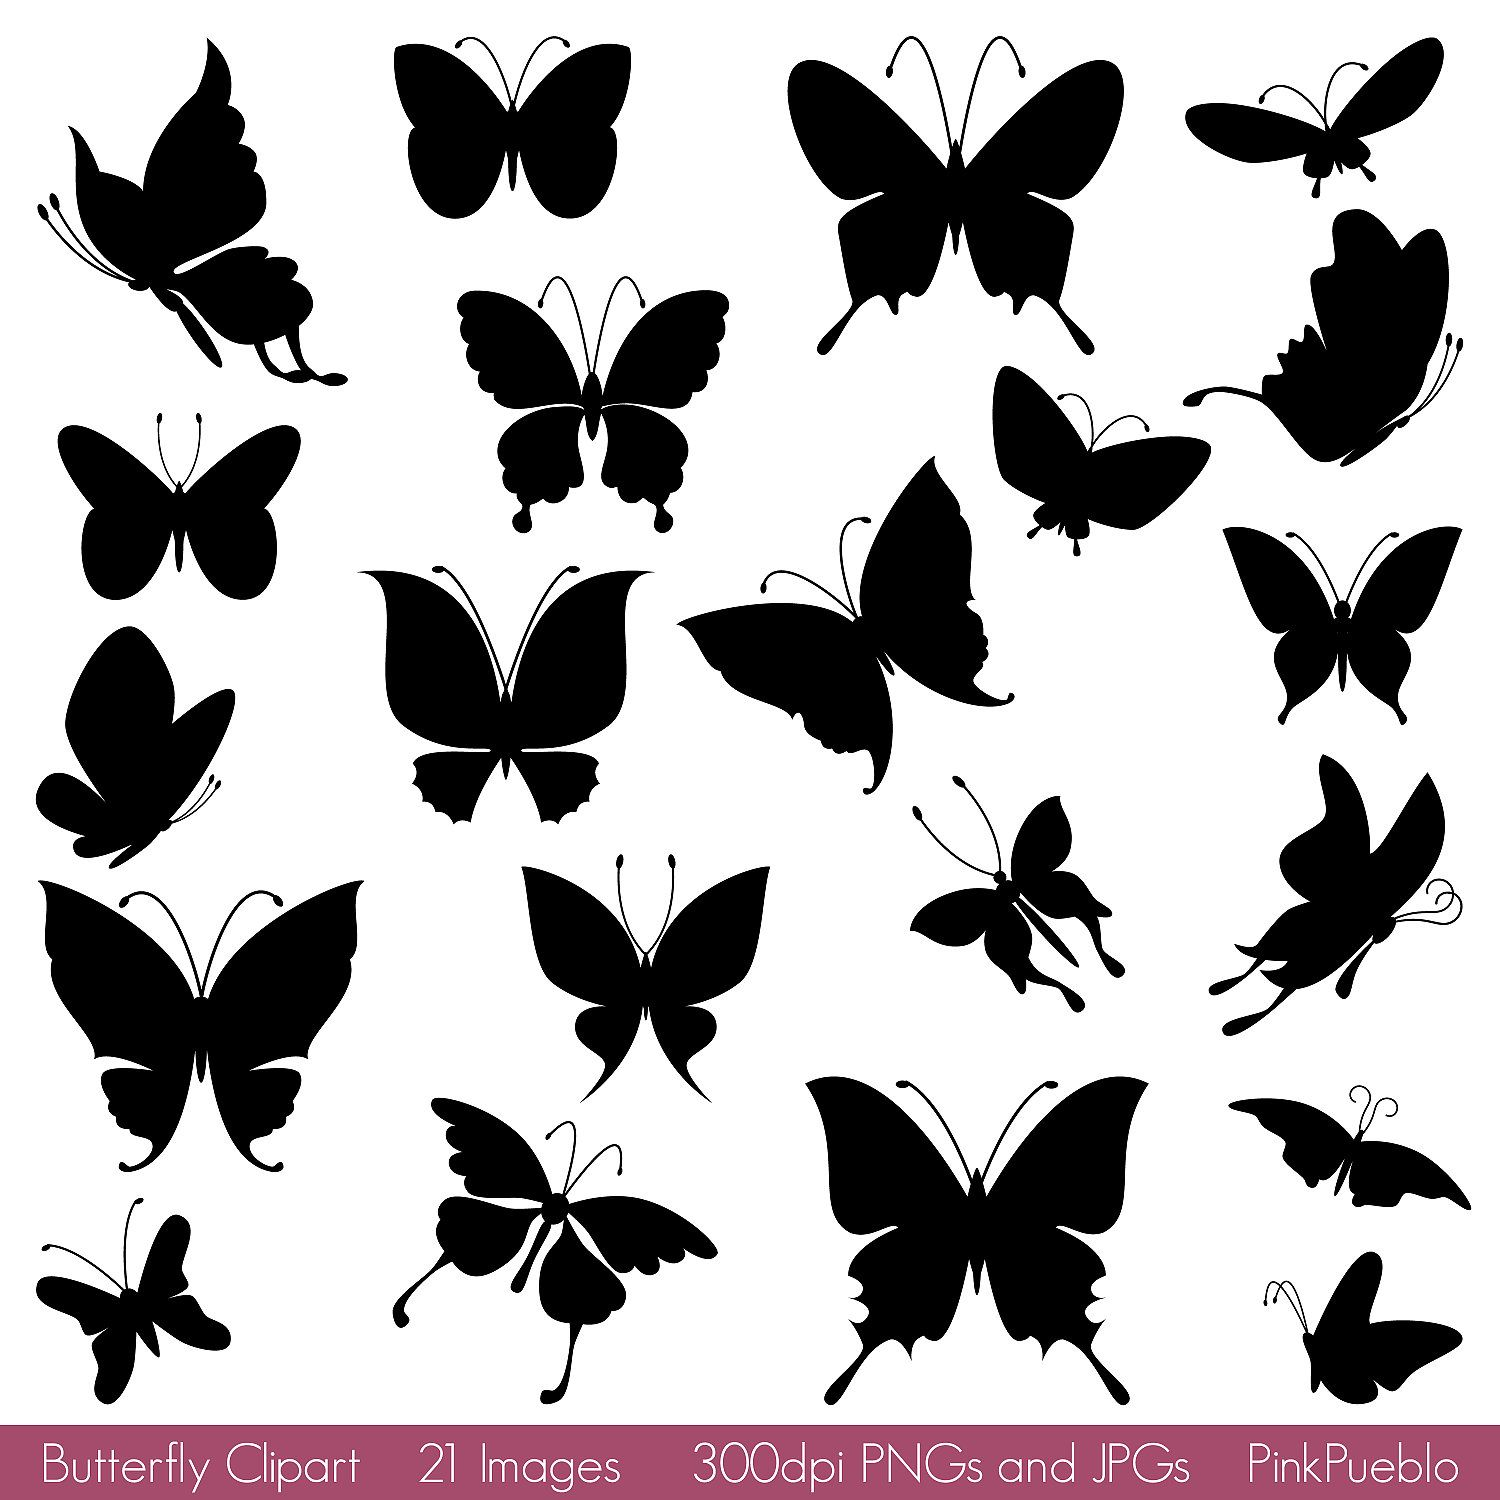 Butterfly Silhouettes Clipart Clip Art Butterfly Clipart Clip Etsy In 2021 Butterfly Silhouette Silhouette Clip Art Silhouette Art